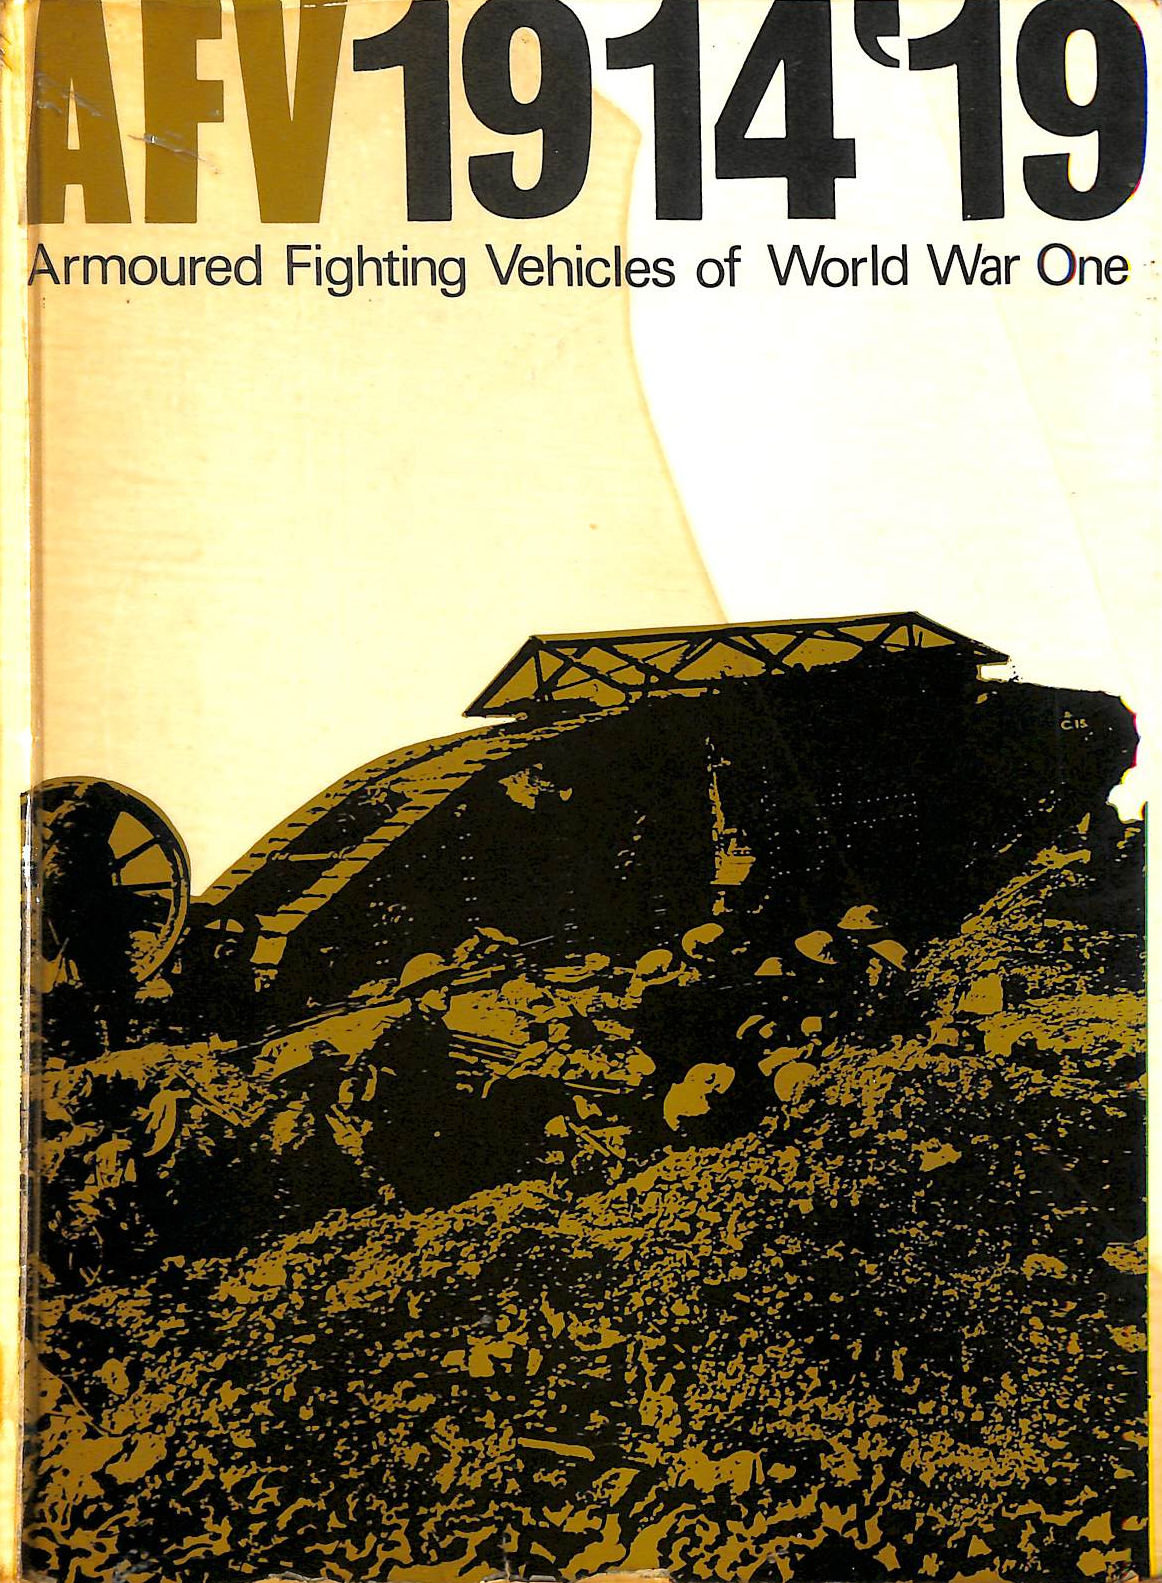 Image for AFV 1914-1919: Armoured Fighting Vehicles of World War I: A.F.V.'s of World War One